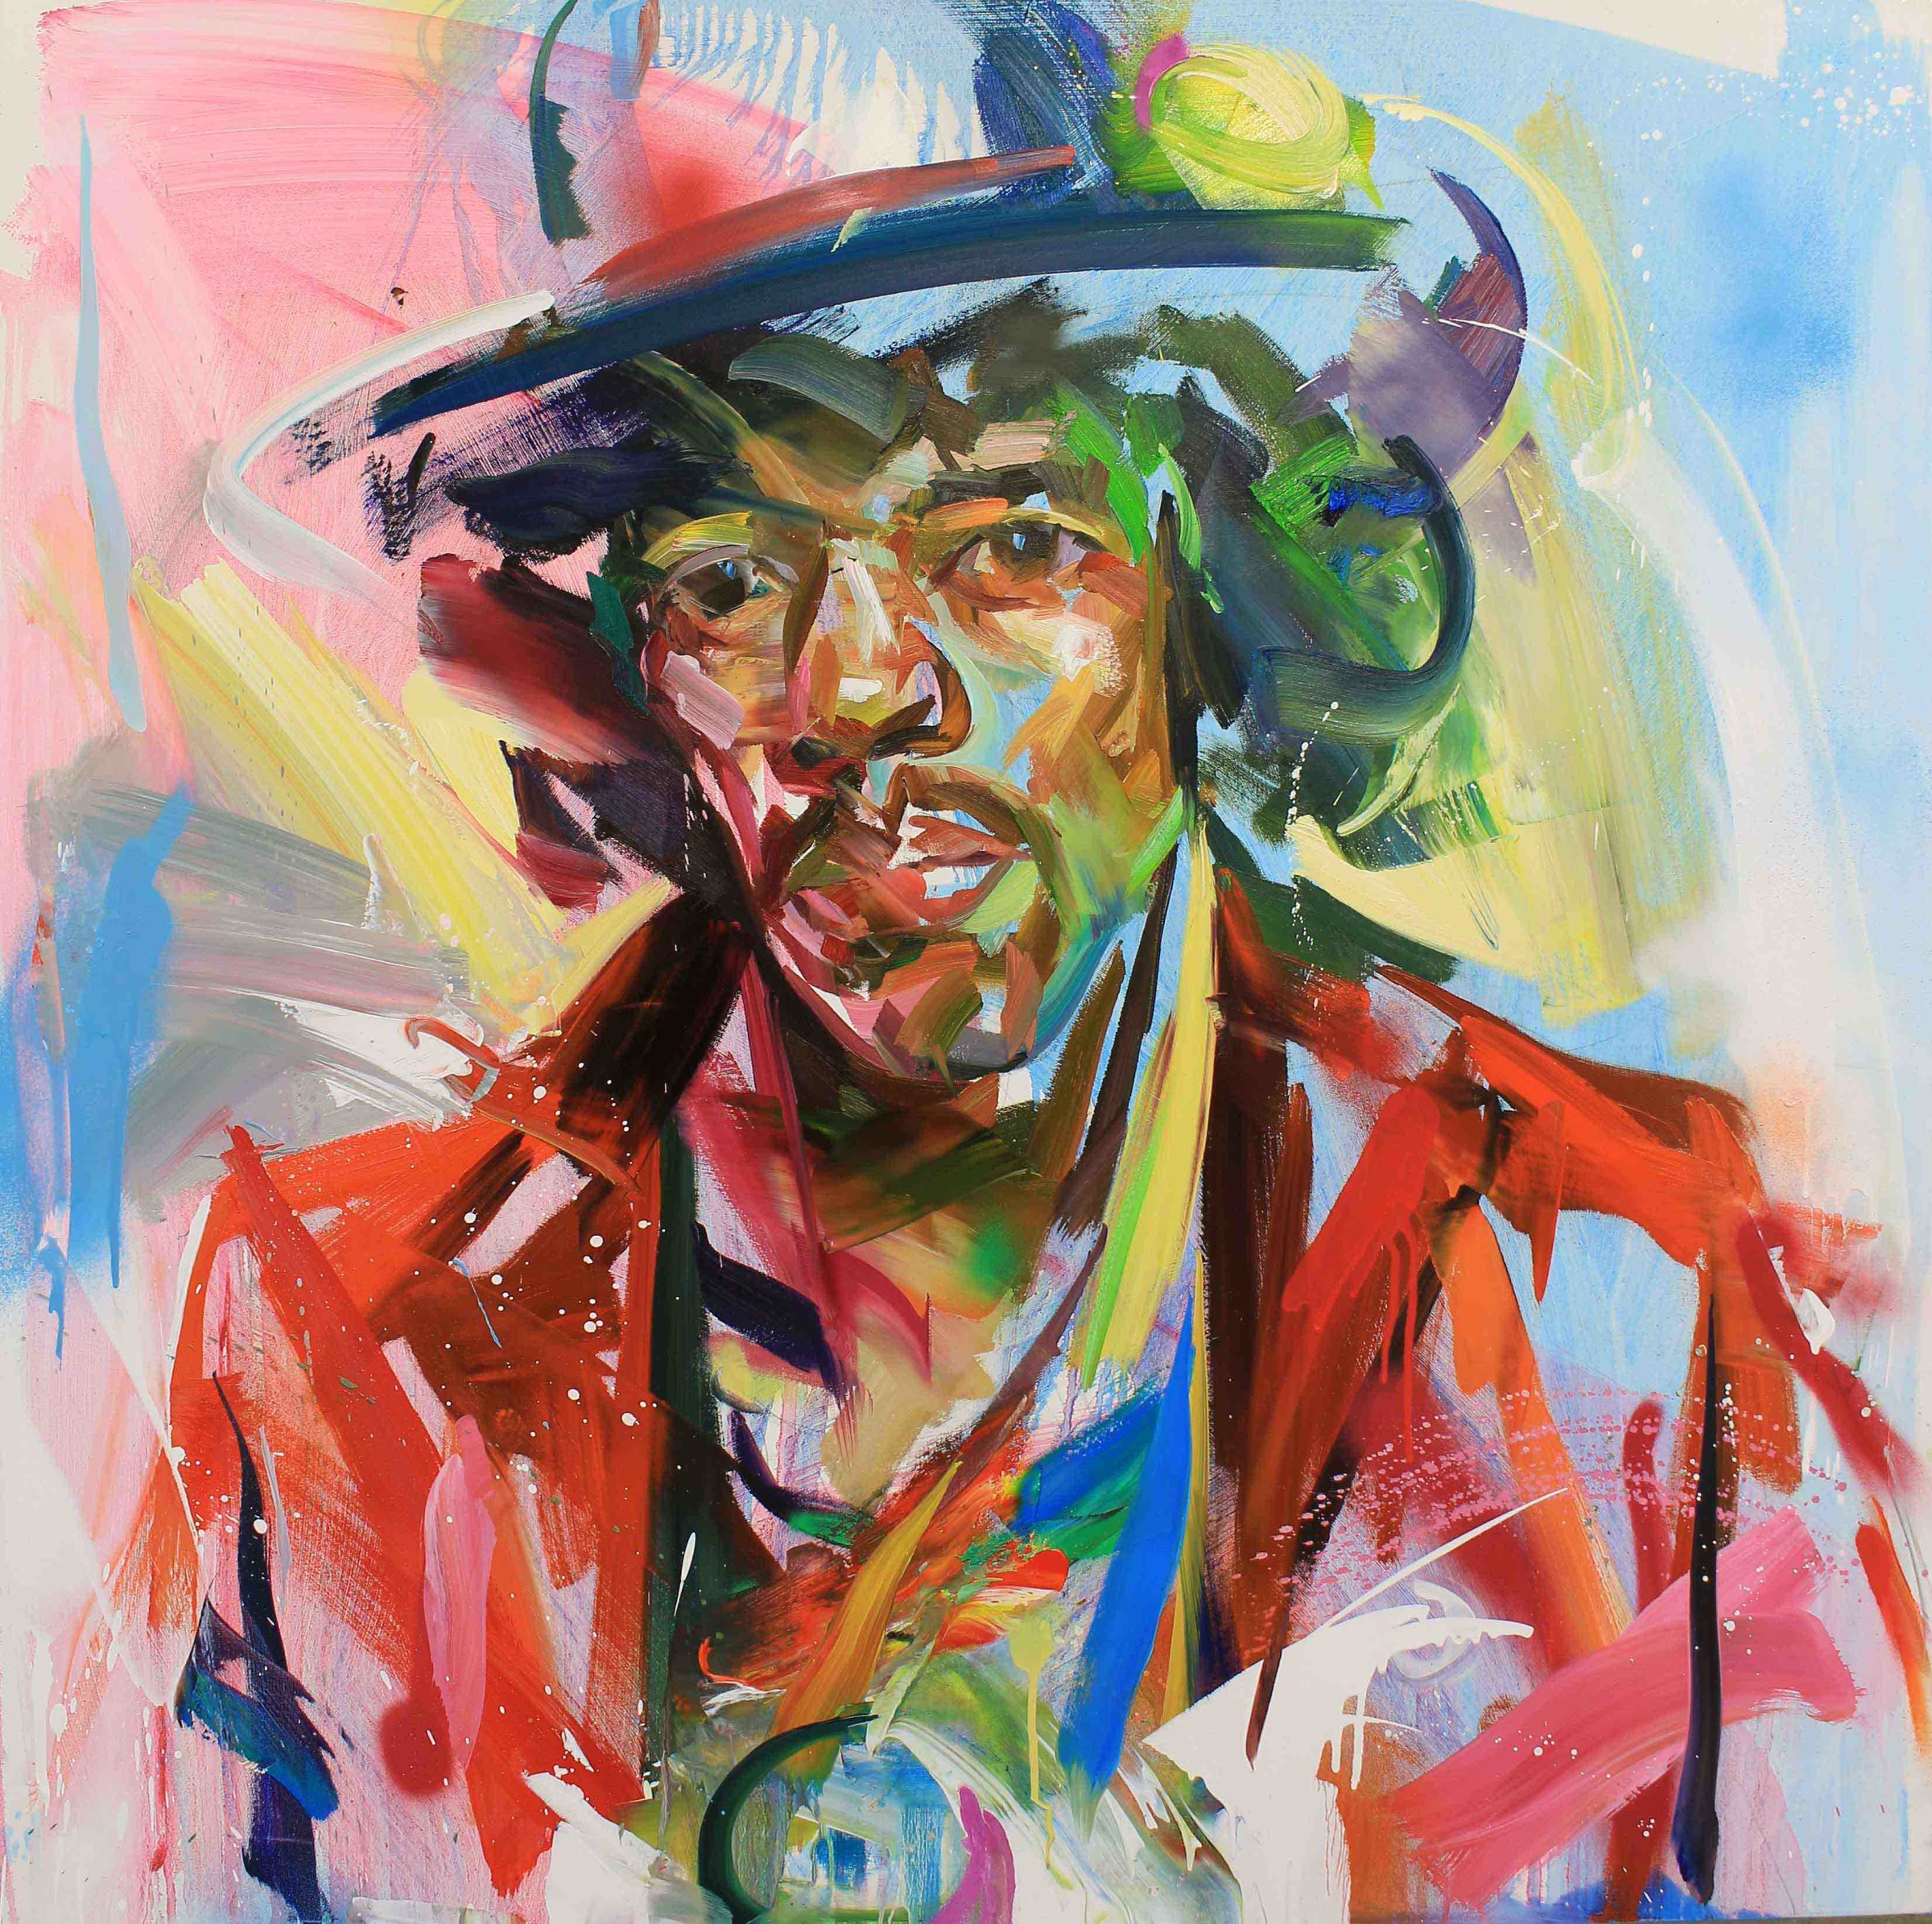 "<span class=""link fancybox-details-link""><a href=""/artists/188-paul-wright/works/2824-paul-wright-jimi-hendrix/"">View Detail Page</a></span><div class=""artist""><strong>Paul Wright</strong></div> <div class=""title""><em>Jimi Hendrix</em></div> <div class=""medium"">Oil on Linen</div> <div class=""dimensions"">110 x 110cm </div><div class=""price"">£4,375.00</div><div class=""copyright_line"">Copyright The Artist</div>"